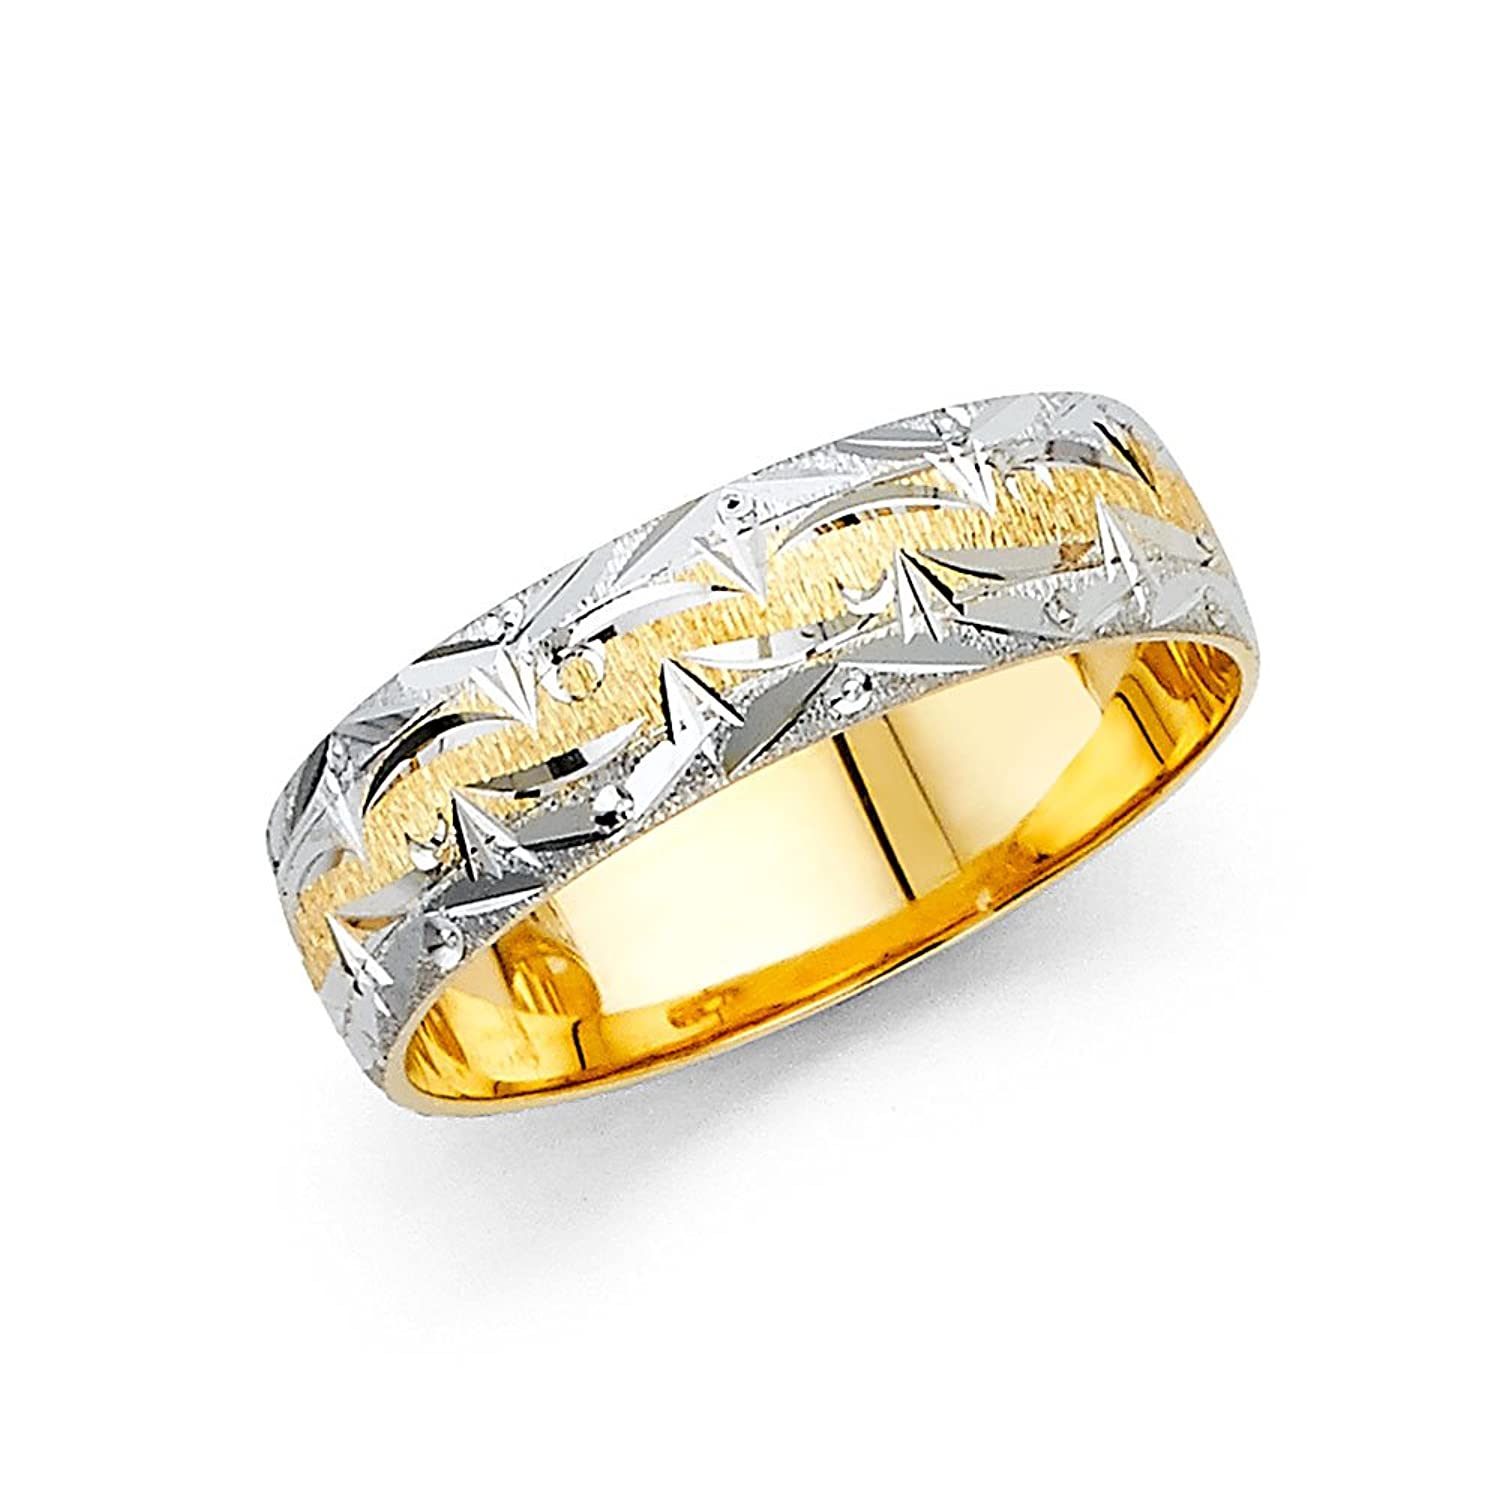 Wellingsale 14k Two 2 Tone White and Yellow Gold Polished Satin 6MM Diamond Cut Comfort Fit Wedding Band Ring